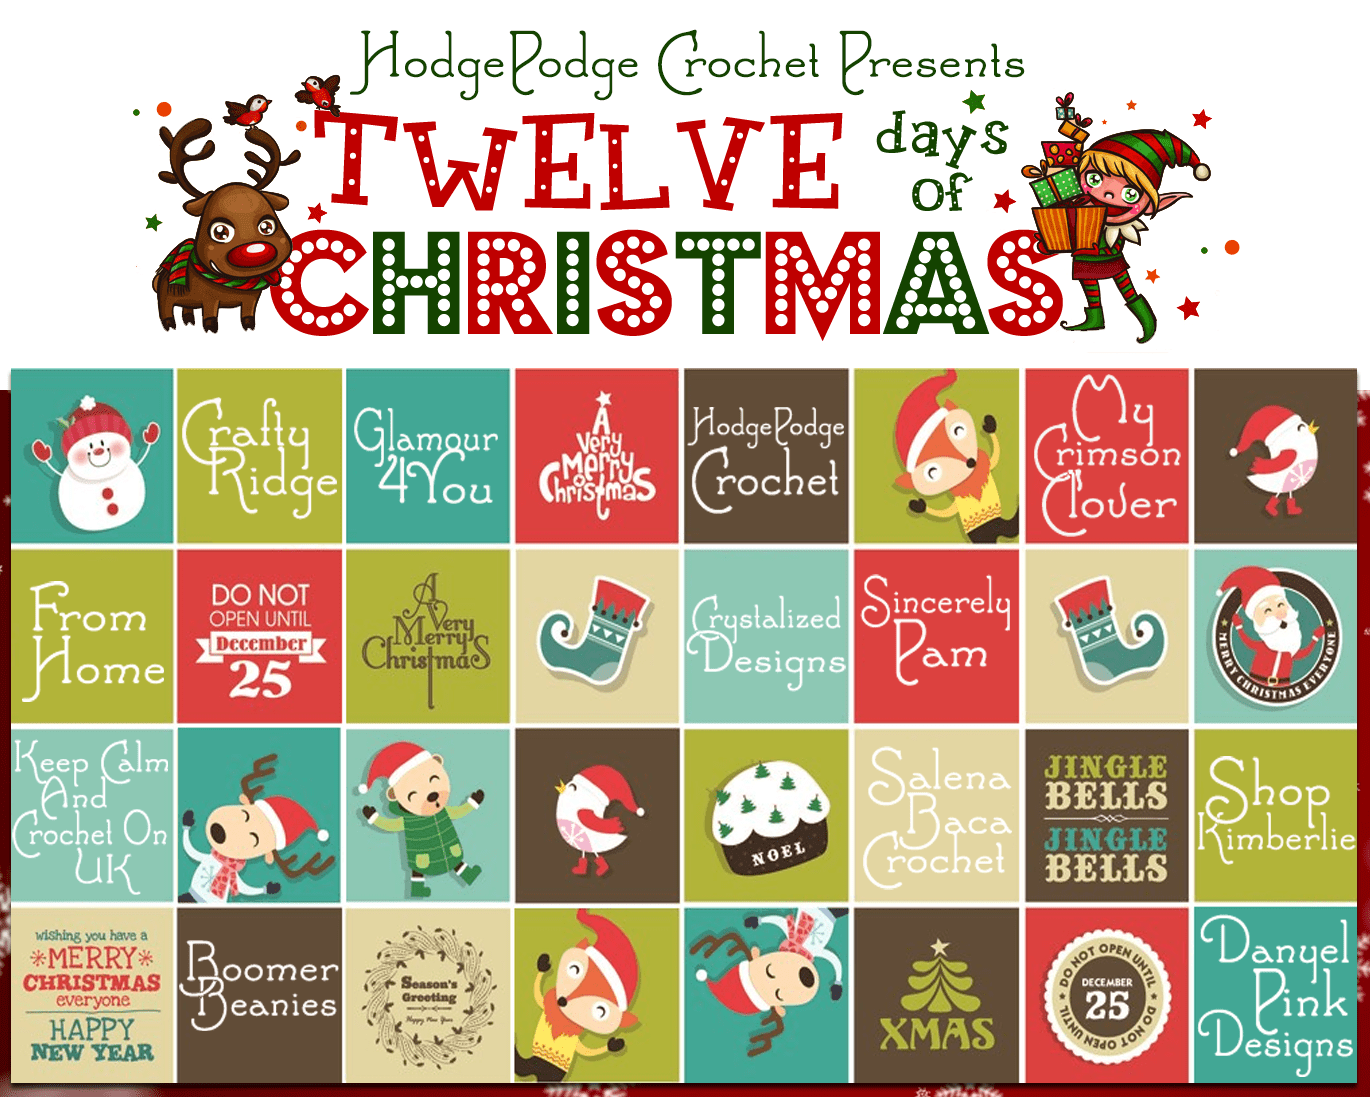 HodgePodge Crochet Celebrates 12 Days of Christmas!